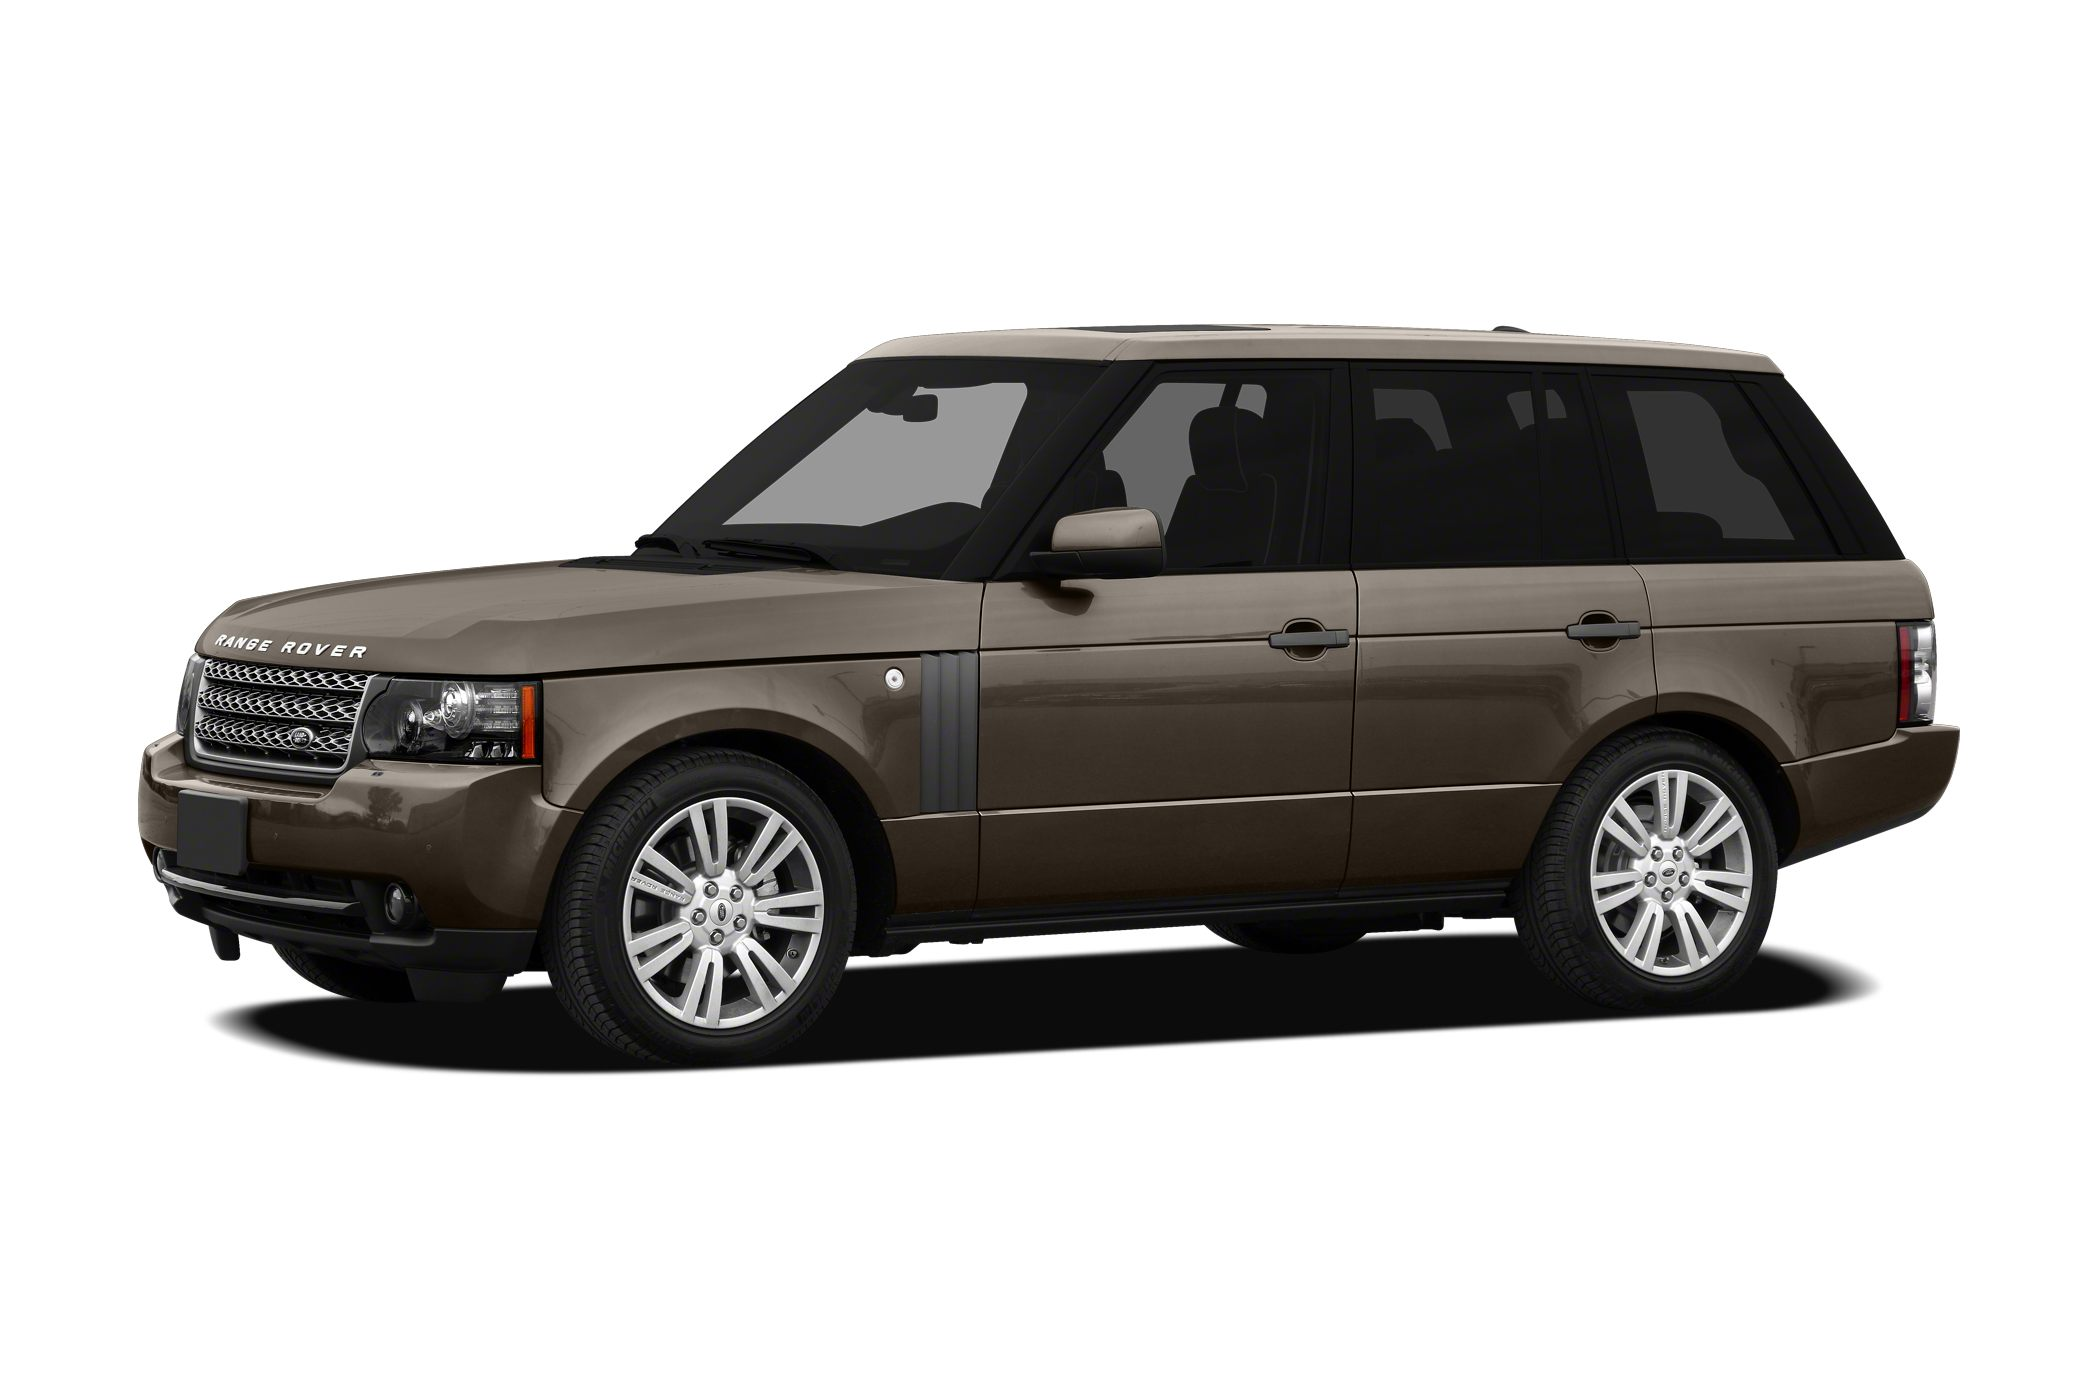 2011 Land Rover Range Rover HSE SUV for sale in West Chester for $49,995 with 41,995 miles.